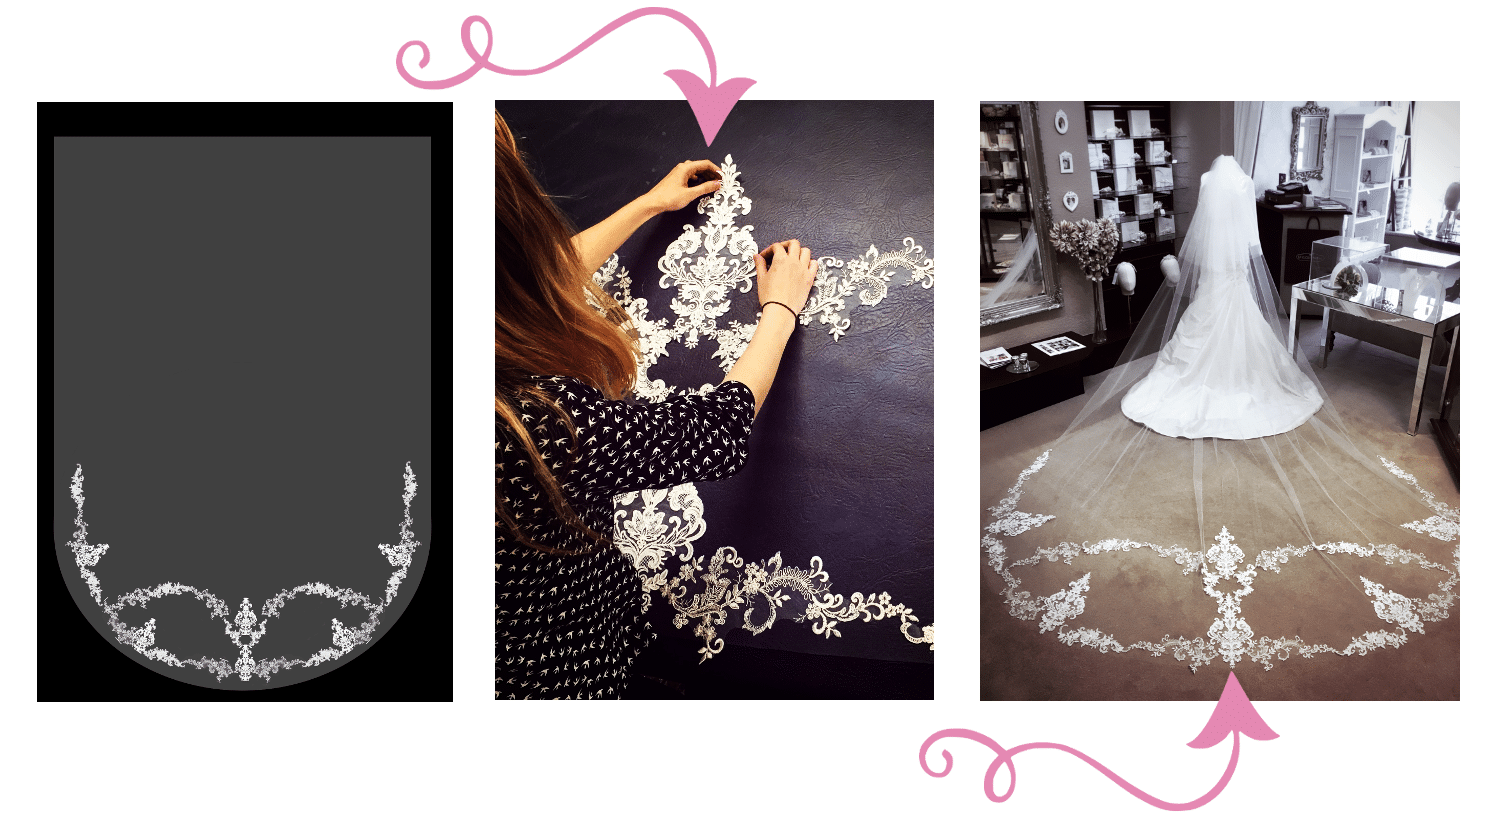 Rohanna Whittle custom lace veil process